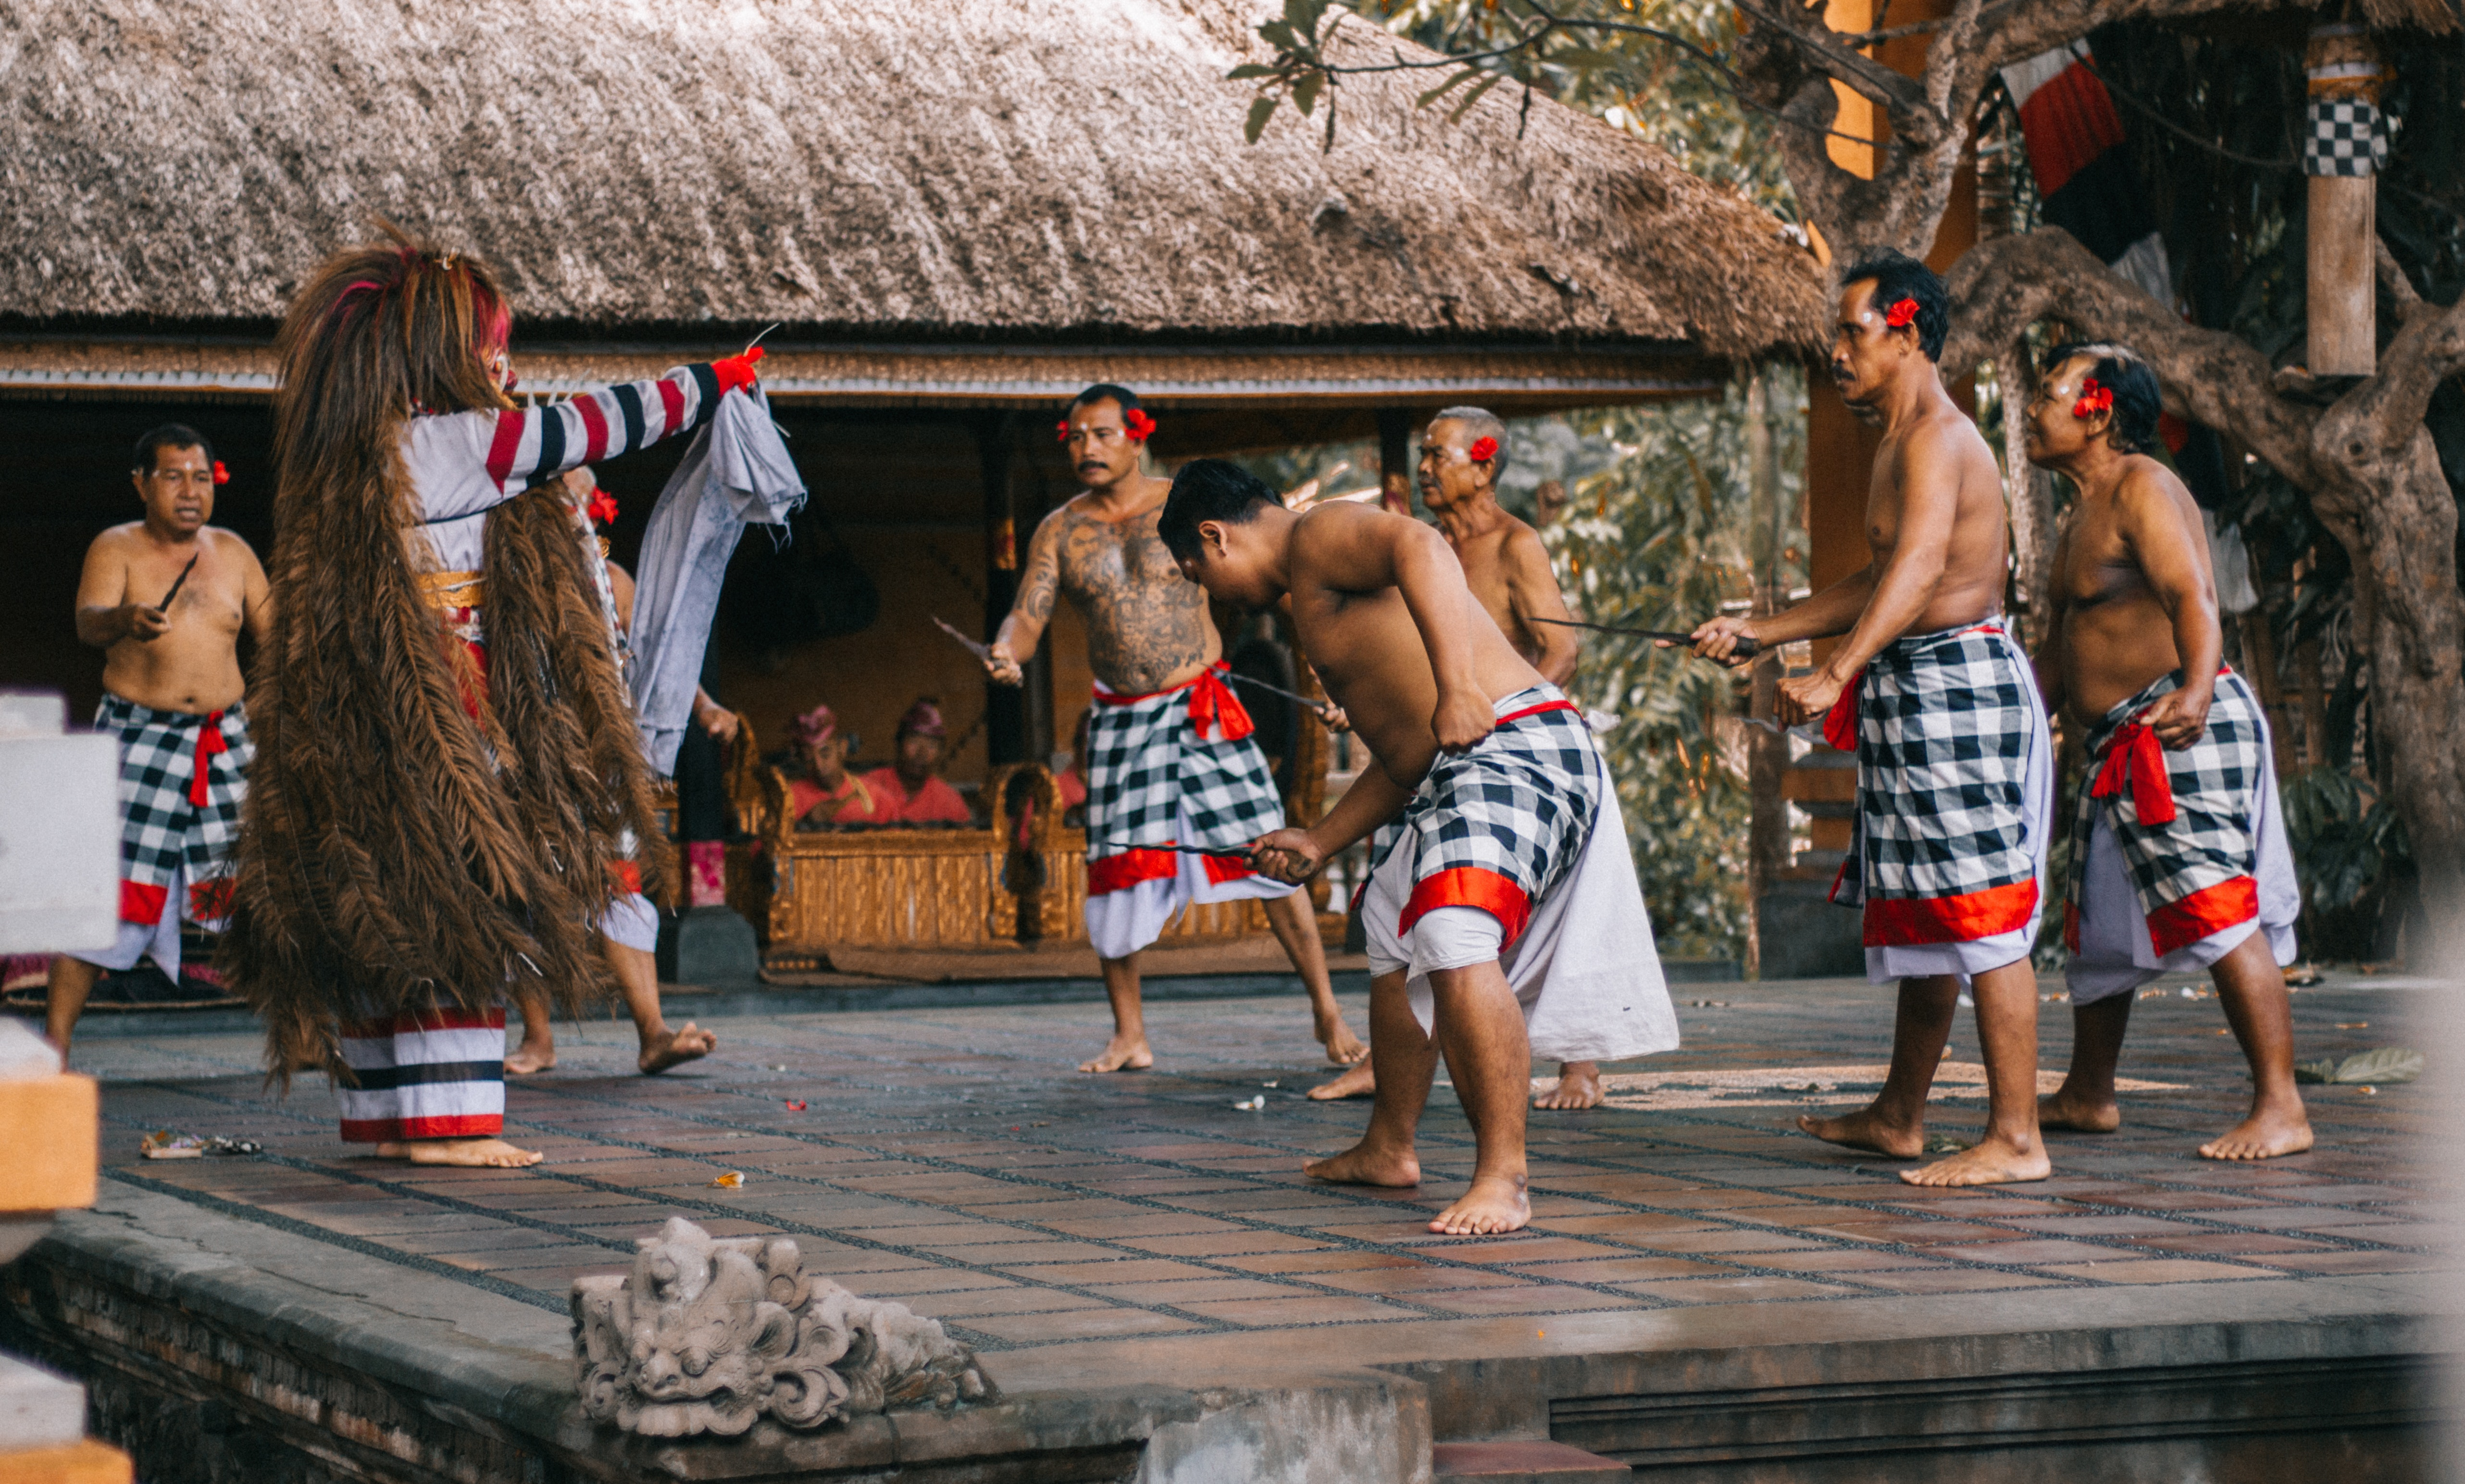 Men wearing white and black checked sarong standing on stage photo